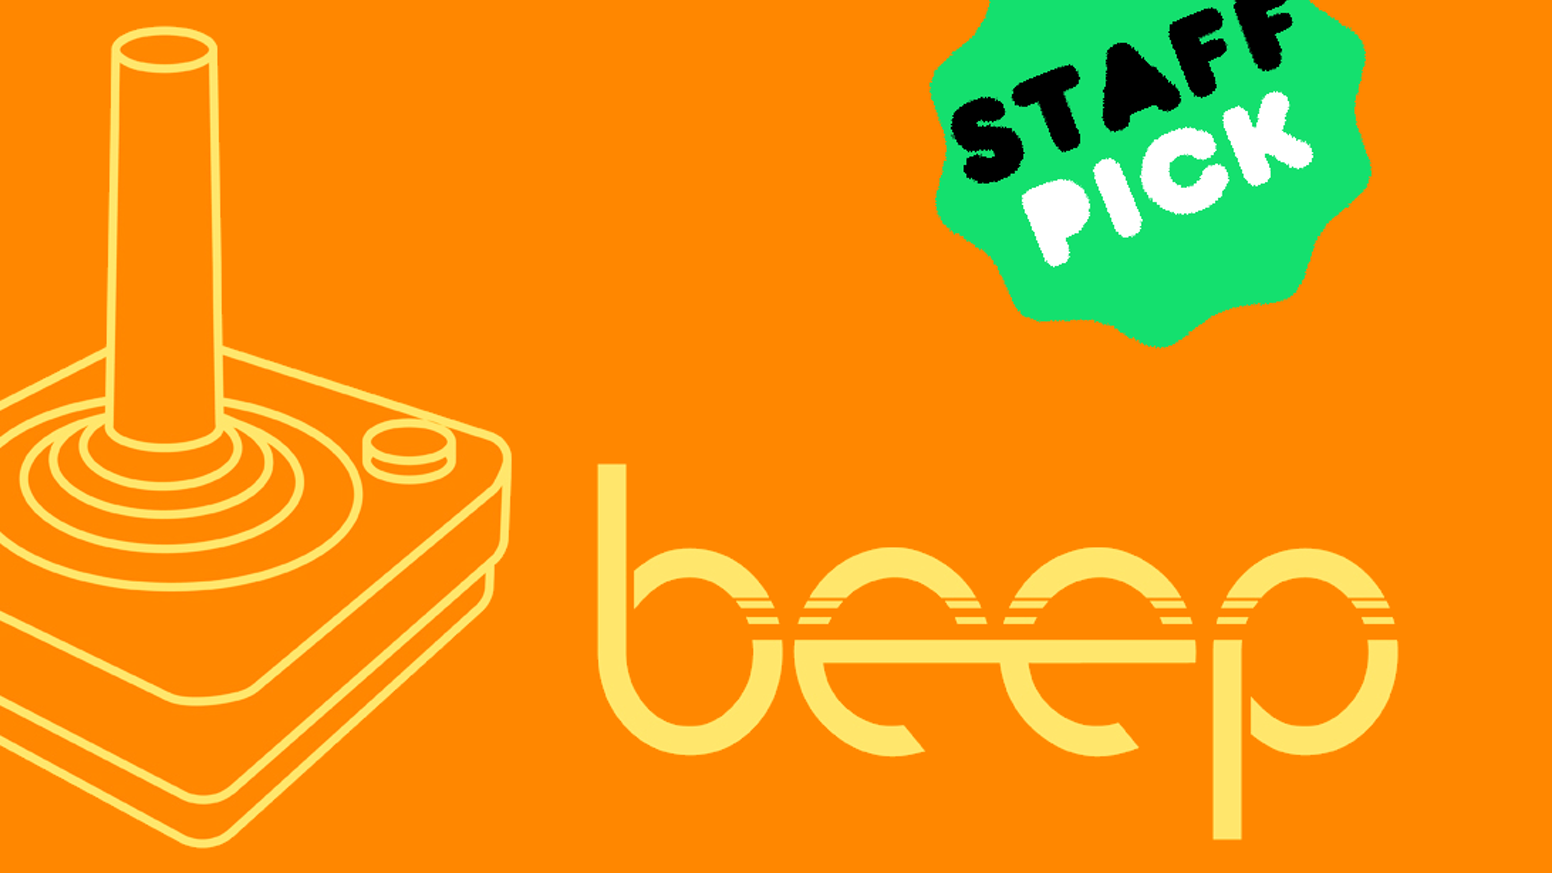 Beep is a feature-length documentary film & book  of game sound & music from the mechanical arcades through to today's orchestras.